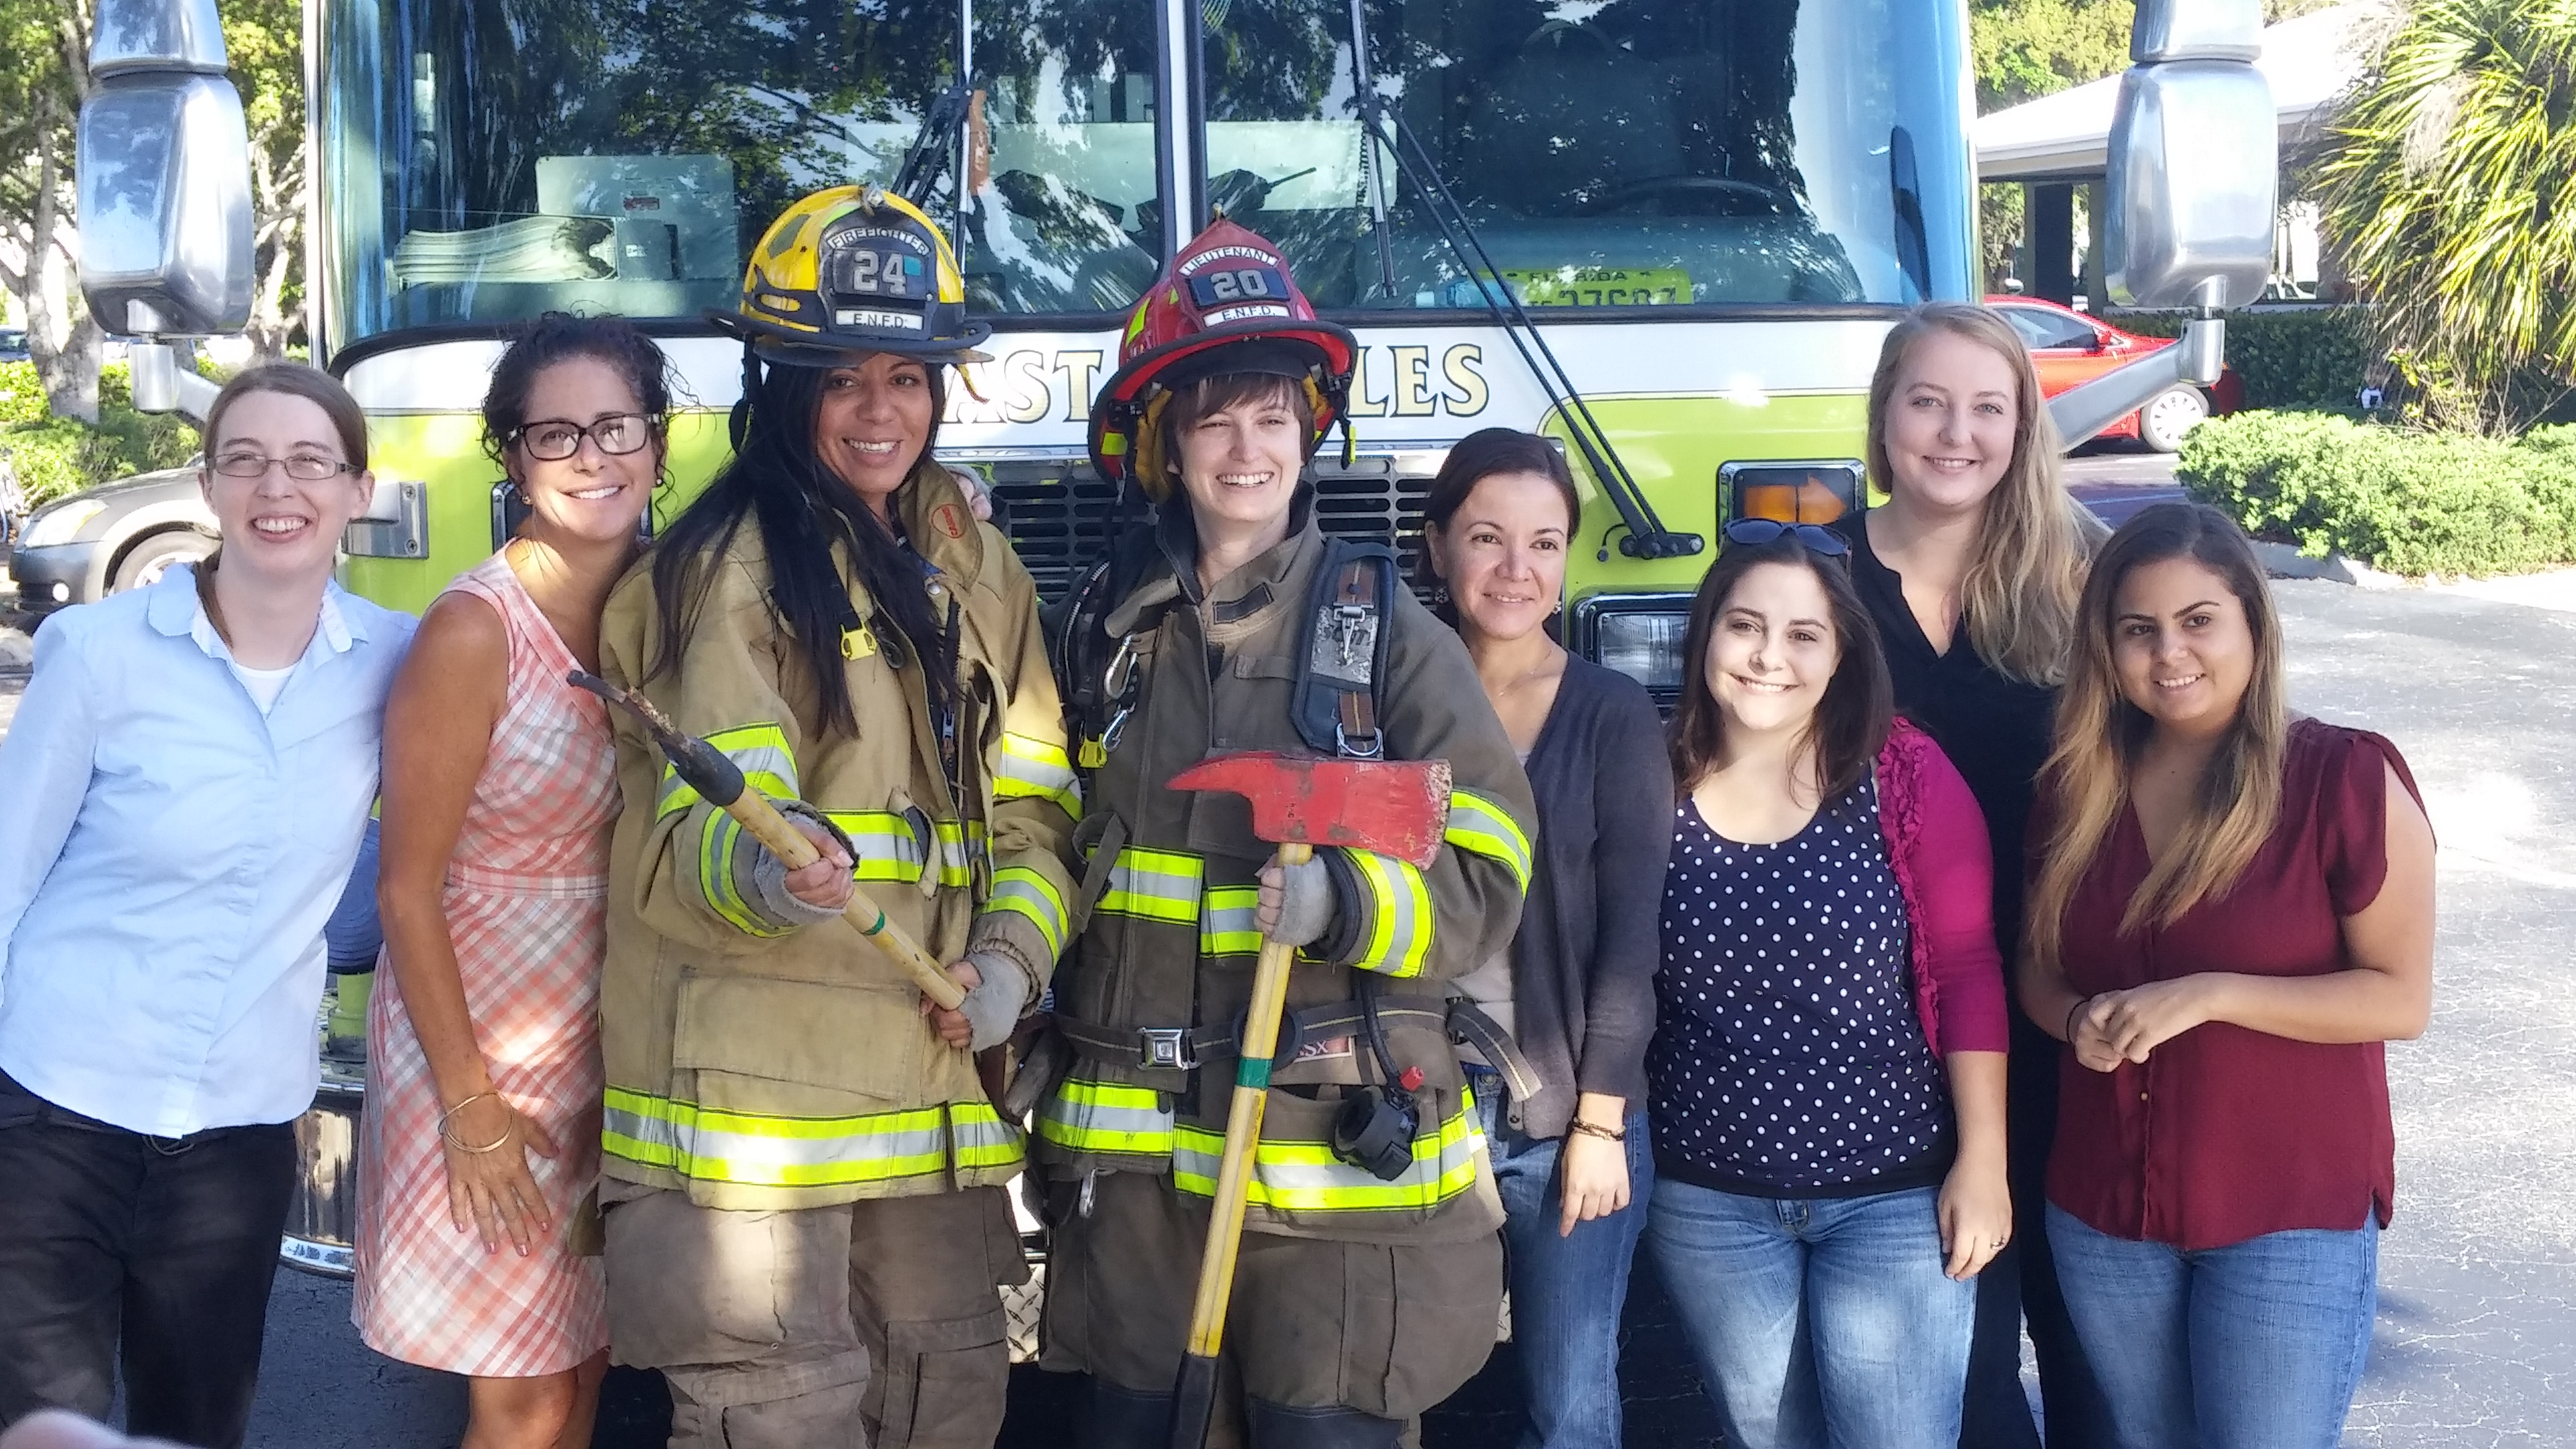 East Naples Fire Fighters visit RGB Team!